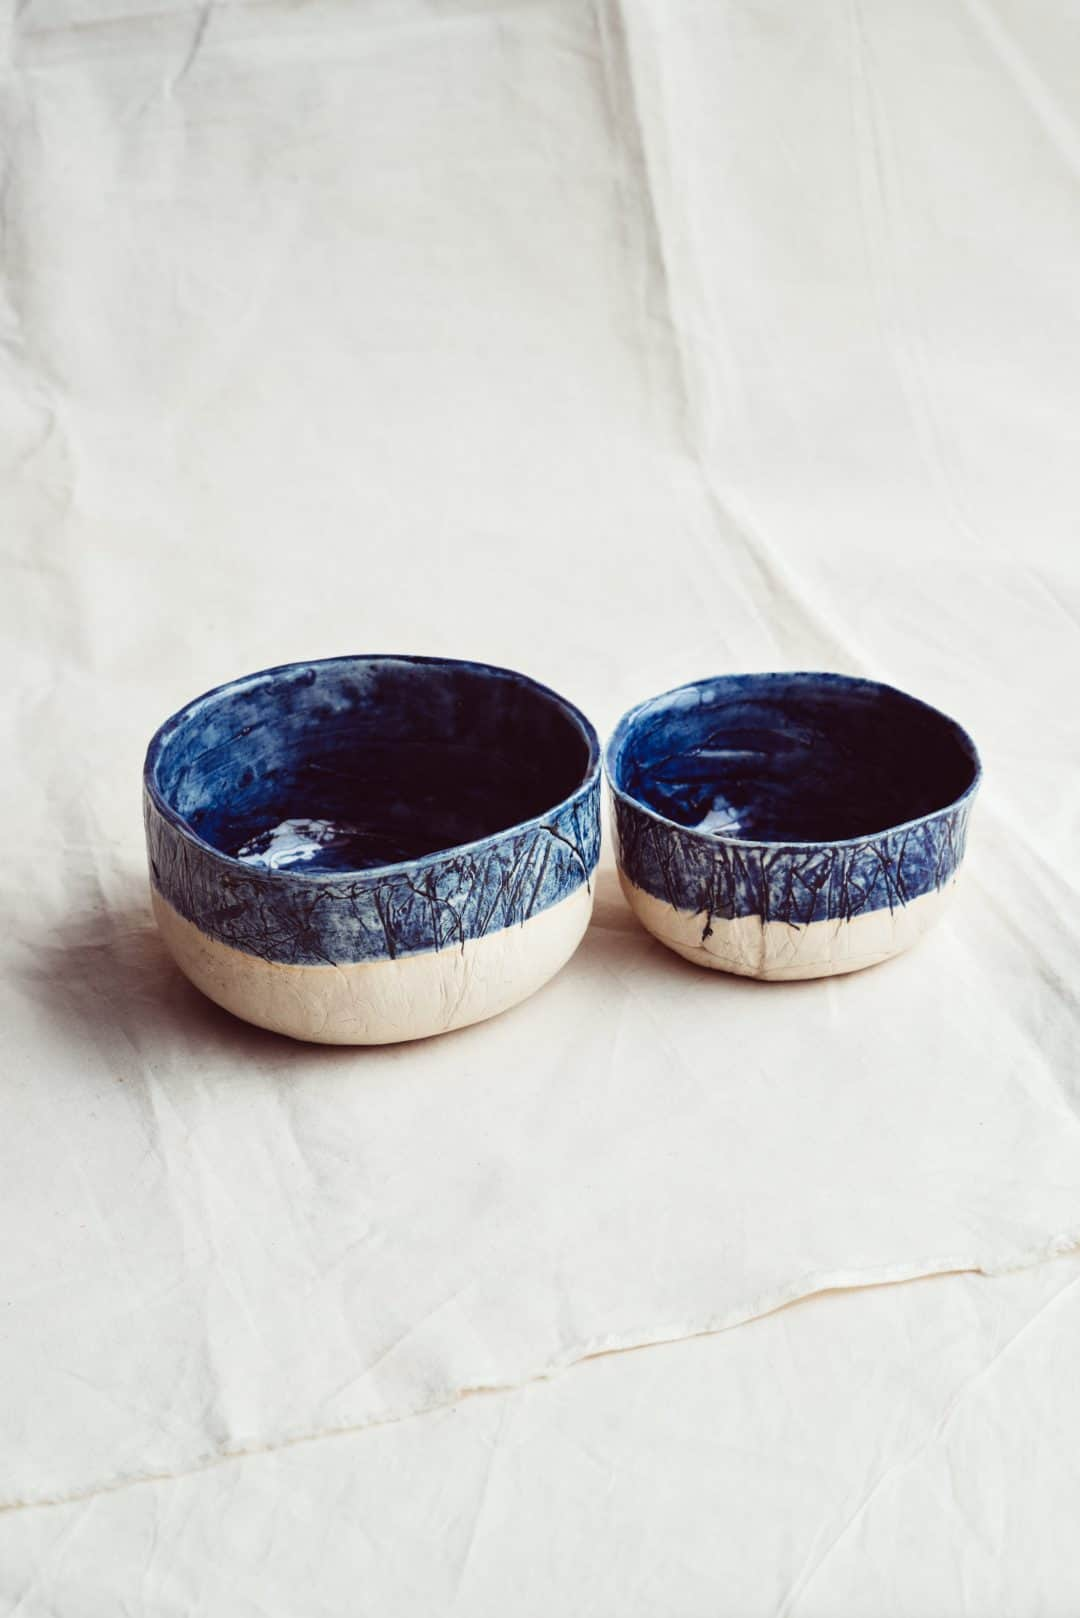 love this handmade blue ceramic breakfast bowl by kana london - one of the wonderful local loves shared by Clem Balfour, founder of The Yoga Brunch Club. Click through to discover more of Clem's simple pleasures and inspirations